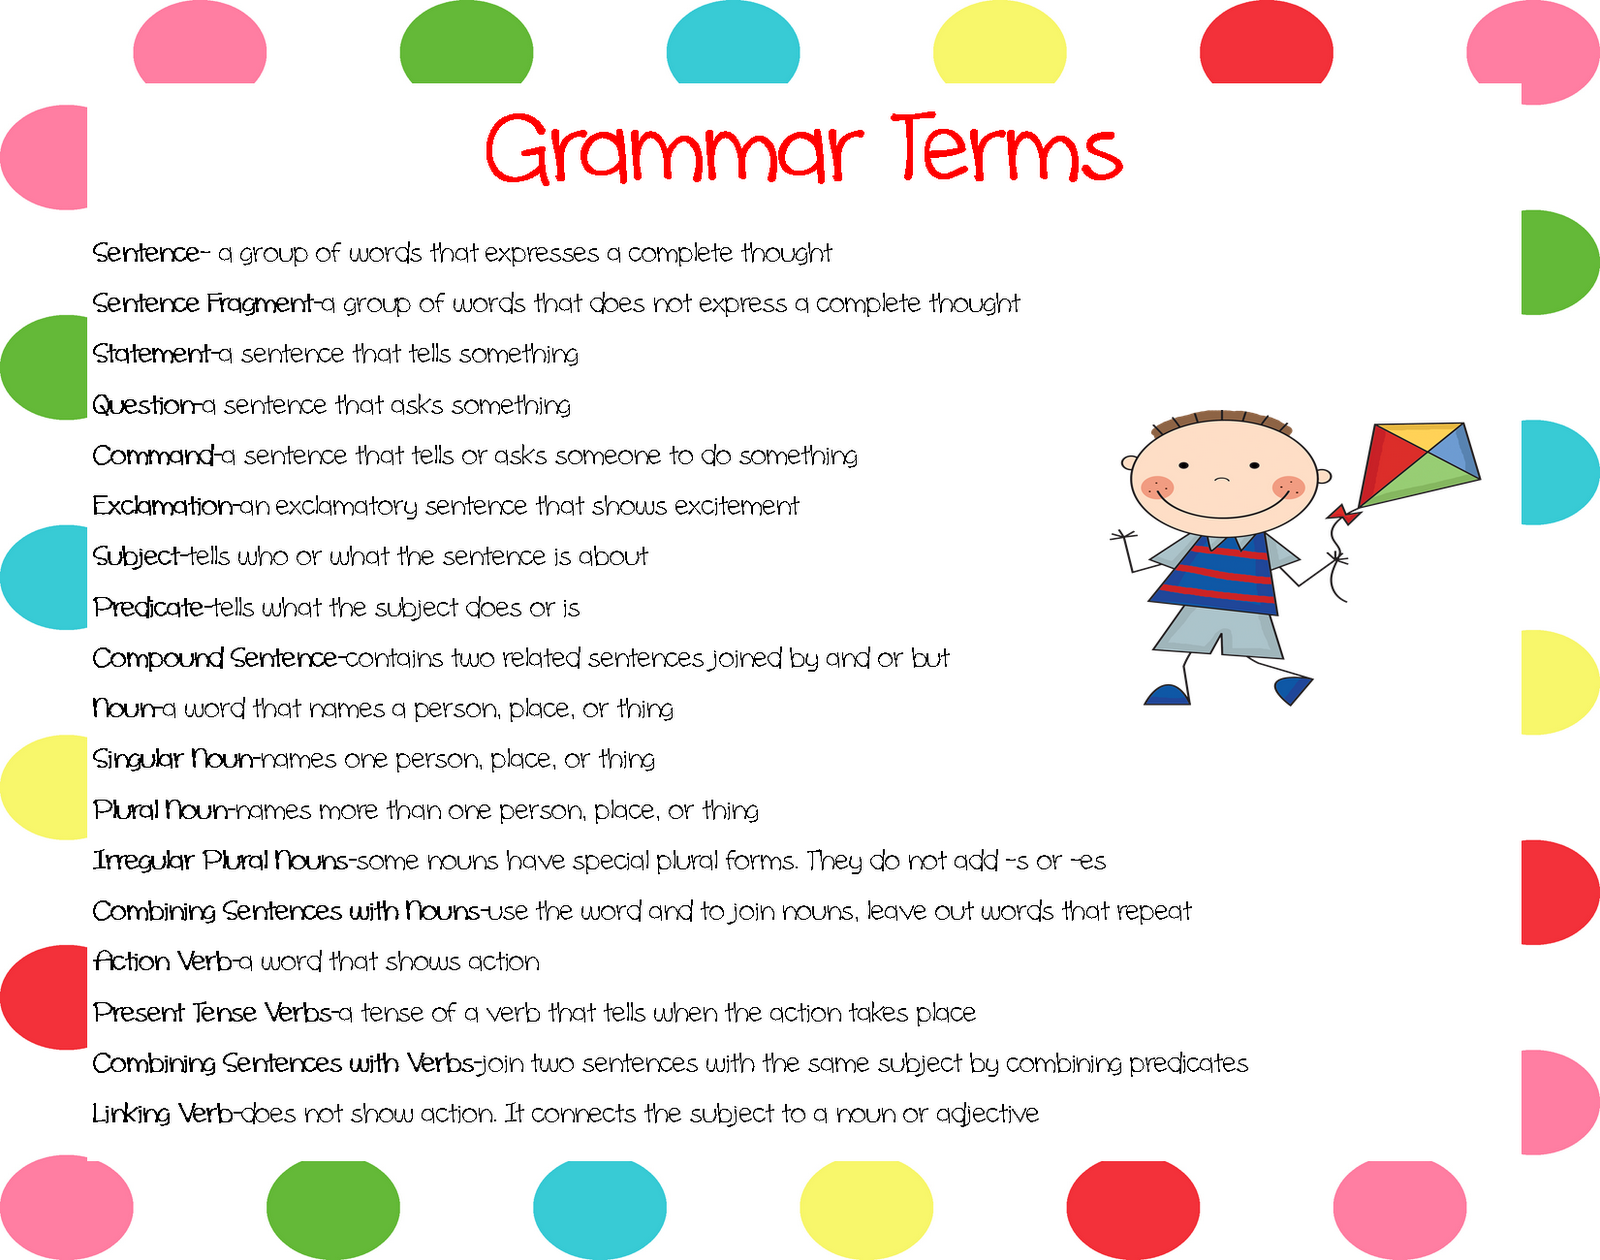 grammar terminology 97 a grammar glossary i f you think your understanding of grammatical terminology may be a bit rusty, then this glossary should be helpful it defines familiar terms.